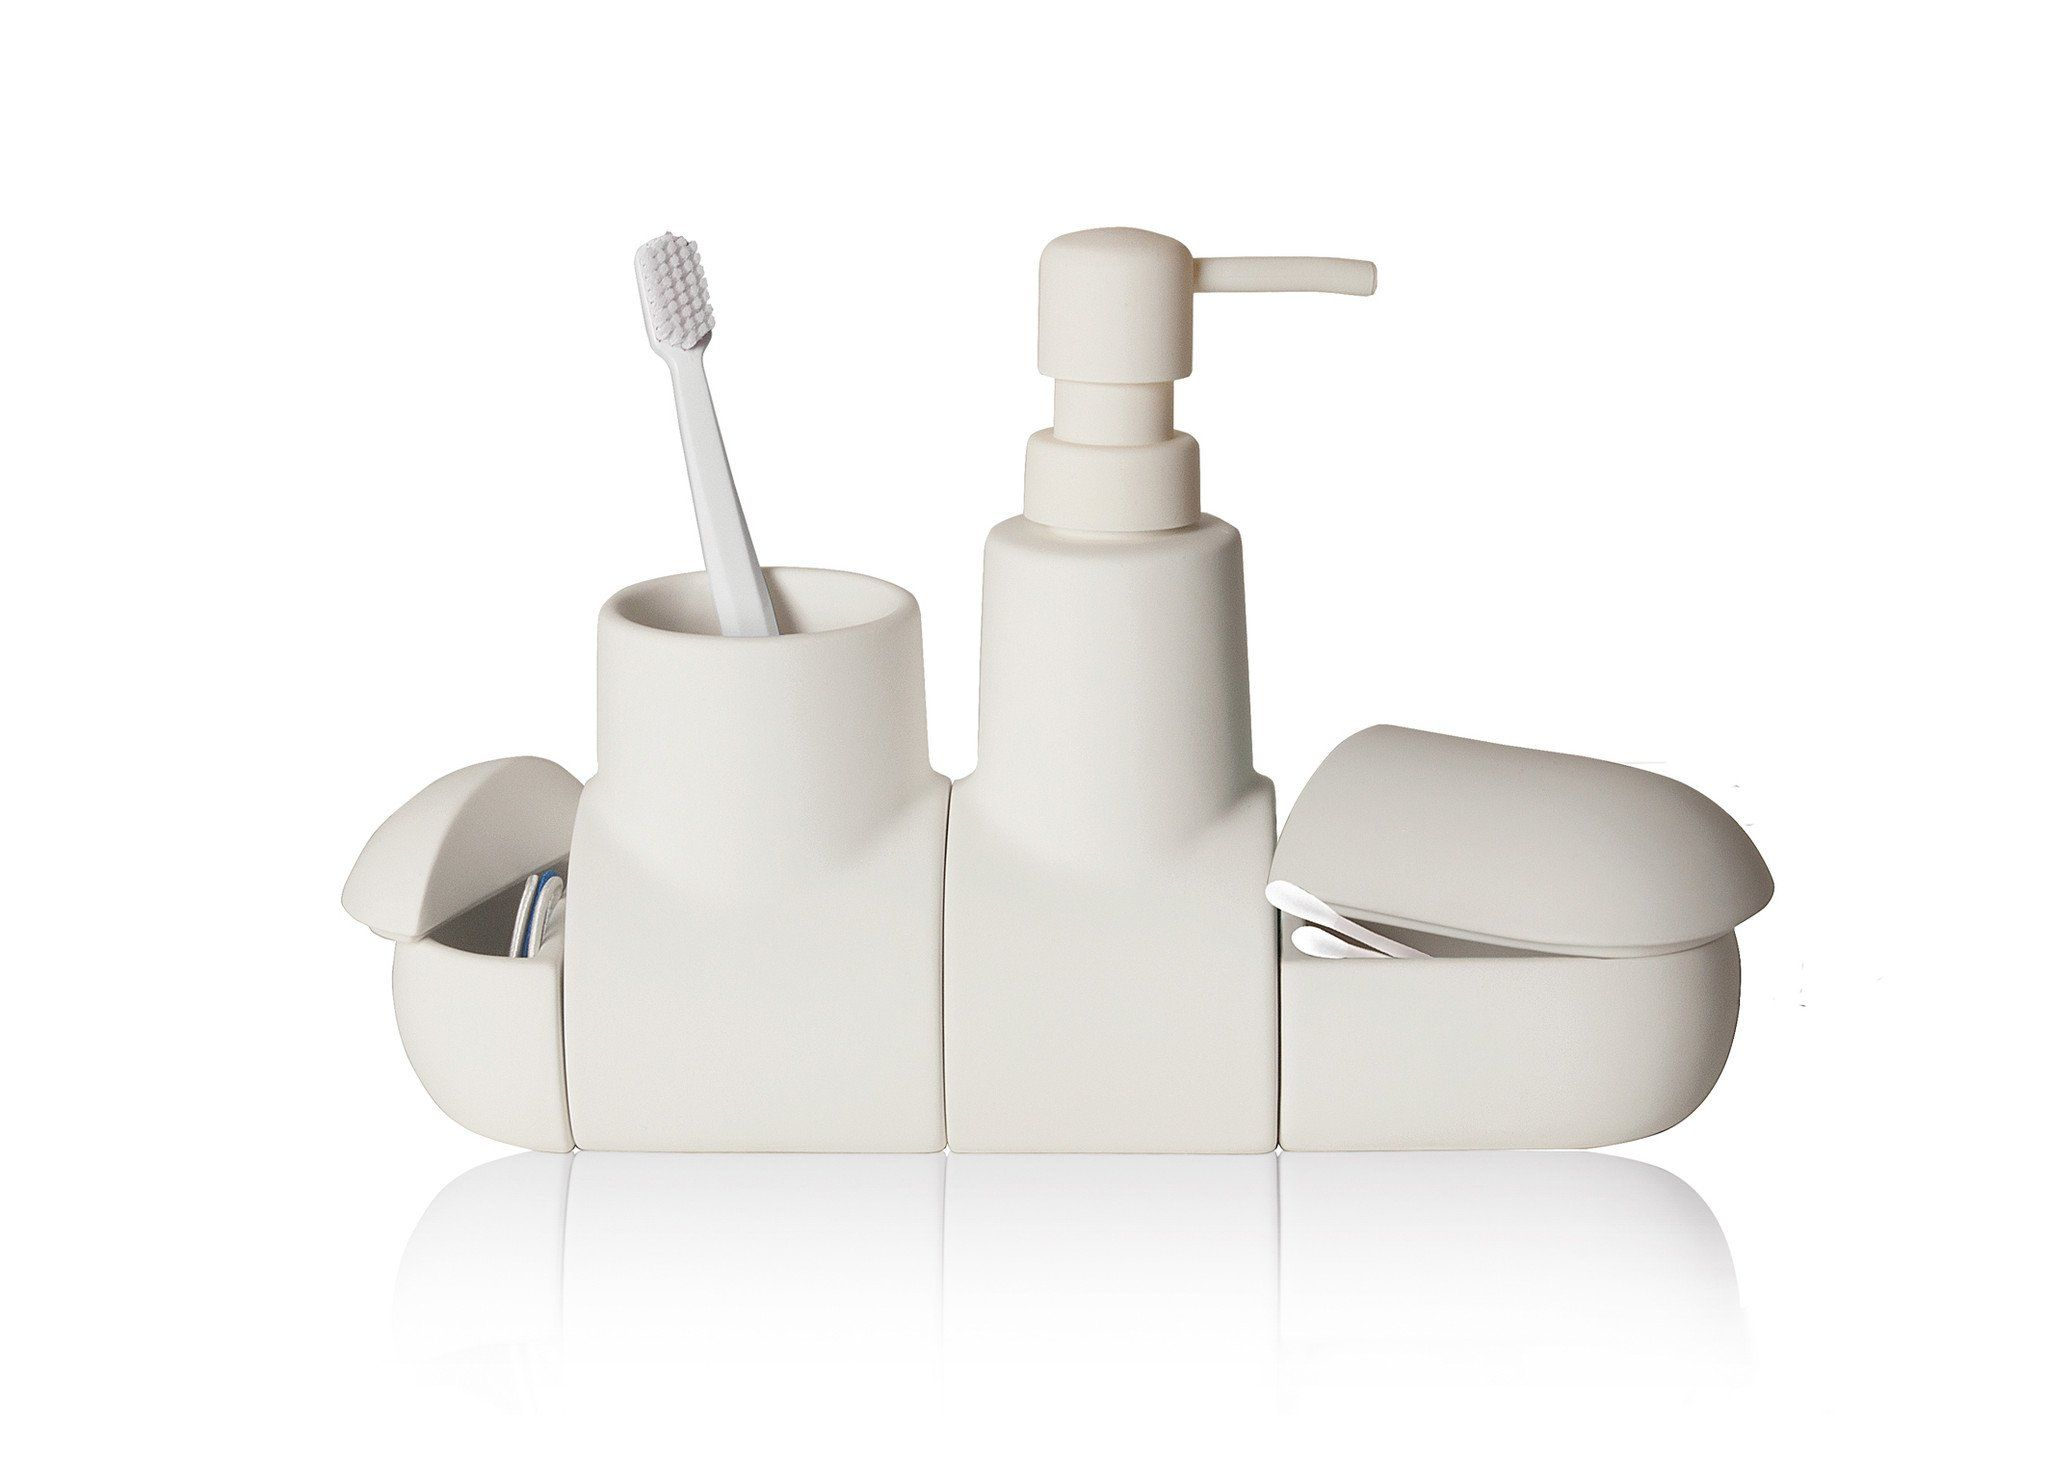 Submarino Porcelain Bathroom Accessory Set in White design by ...